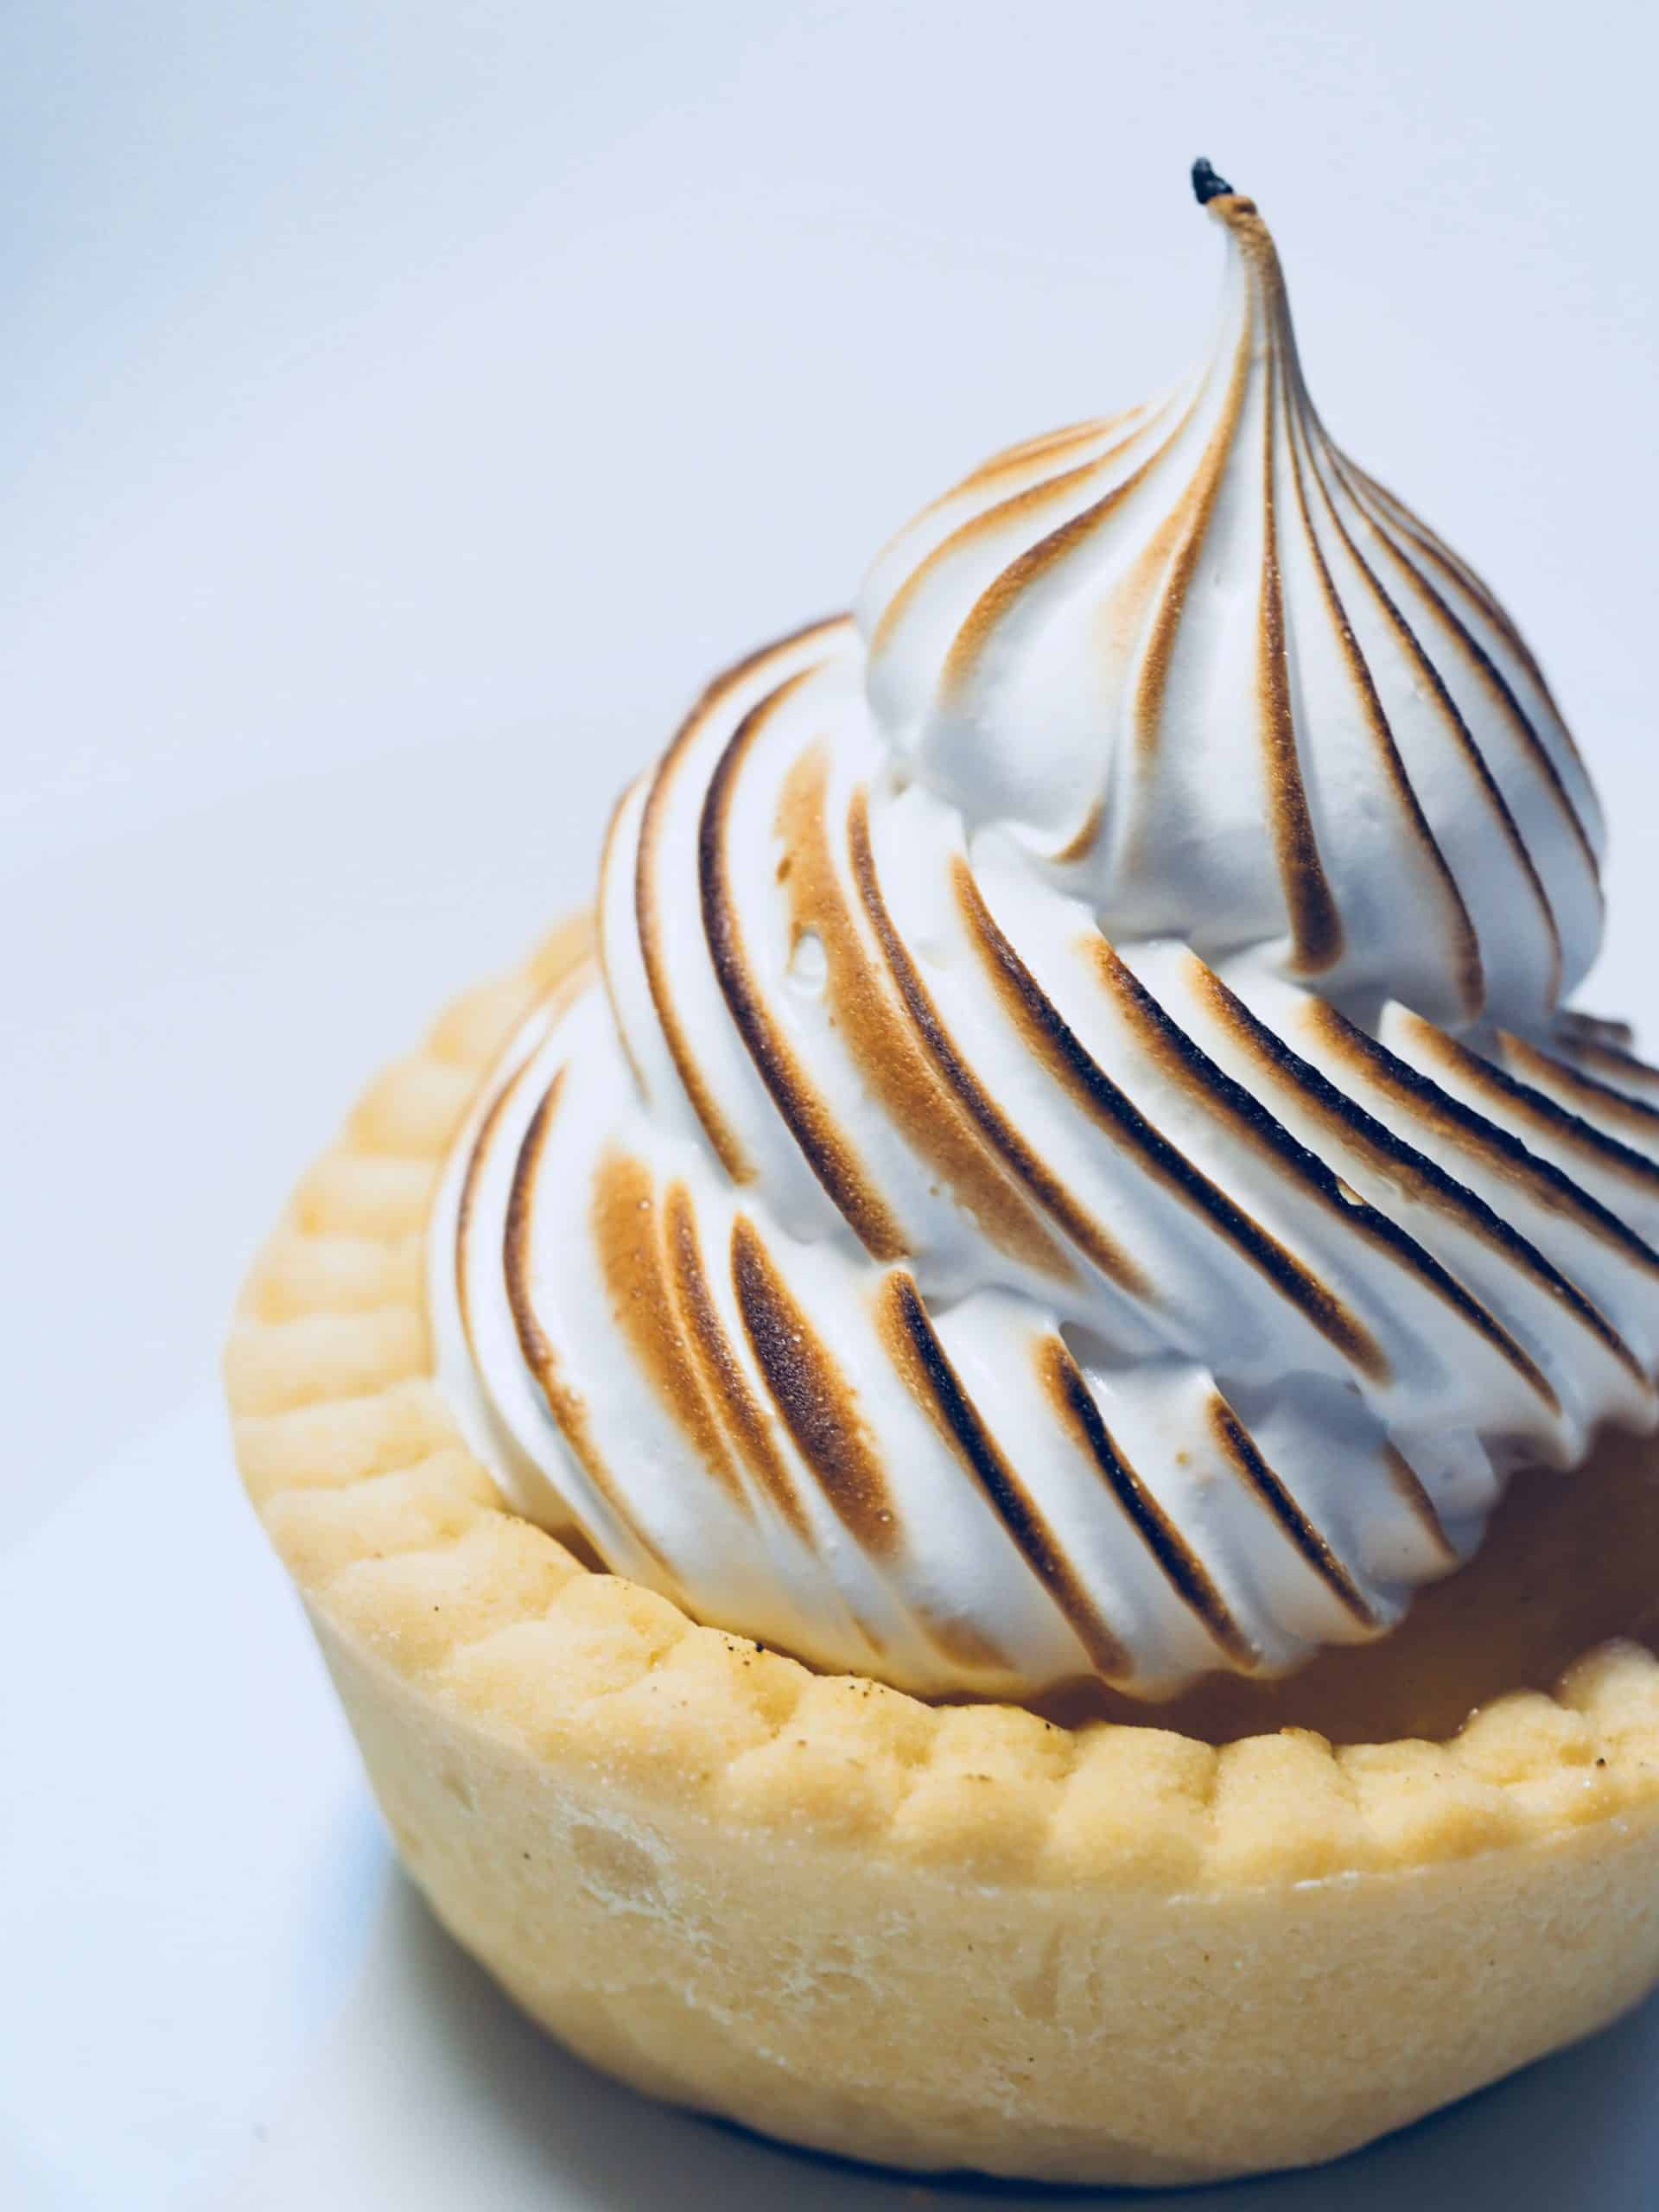 Numerous Fun Facts About Pastry